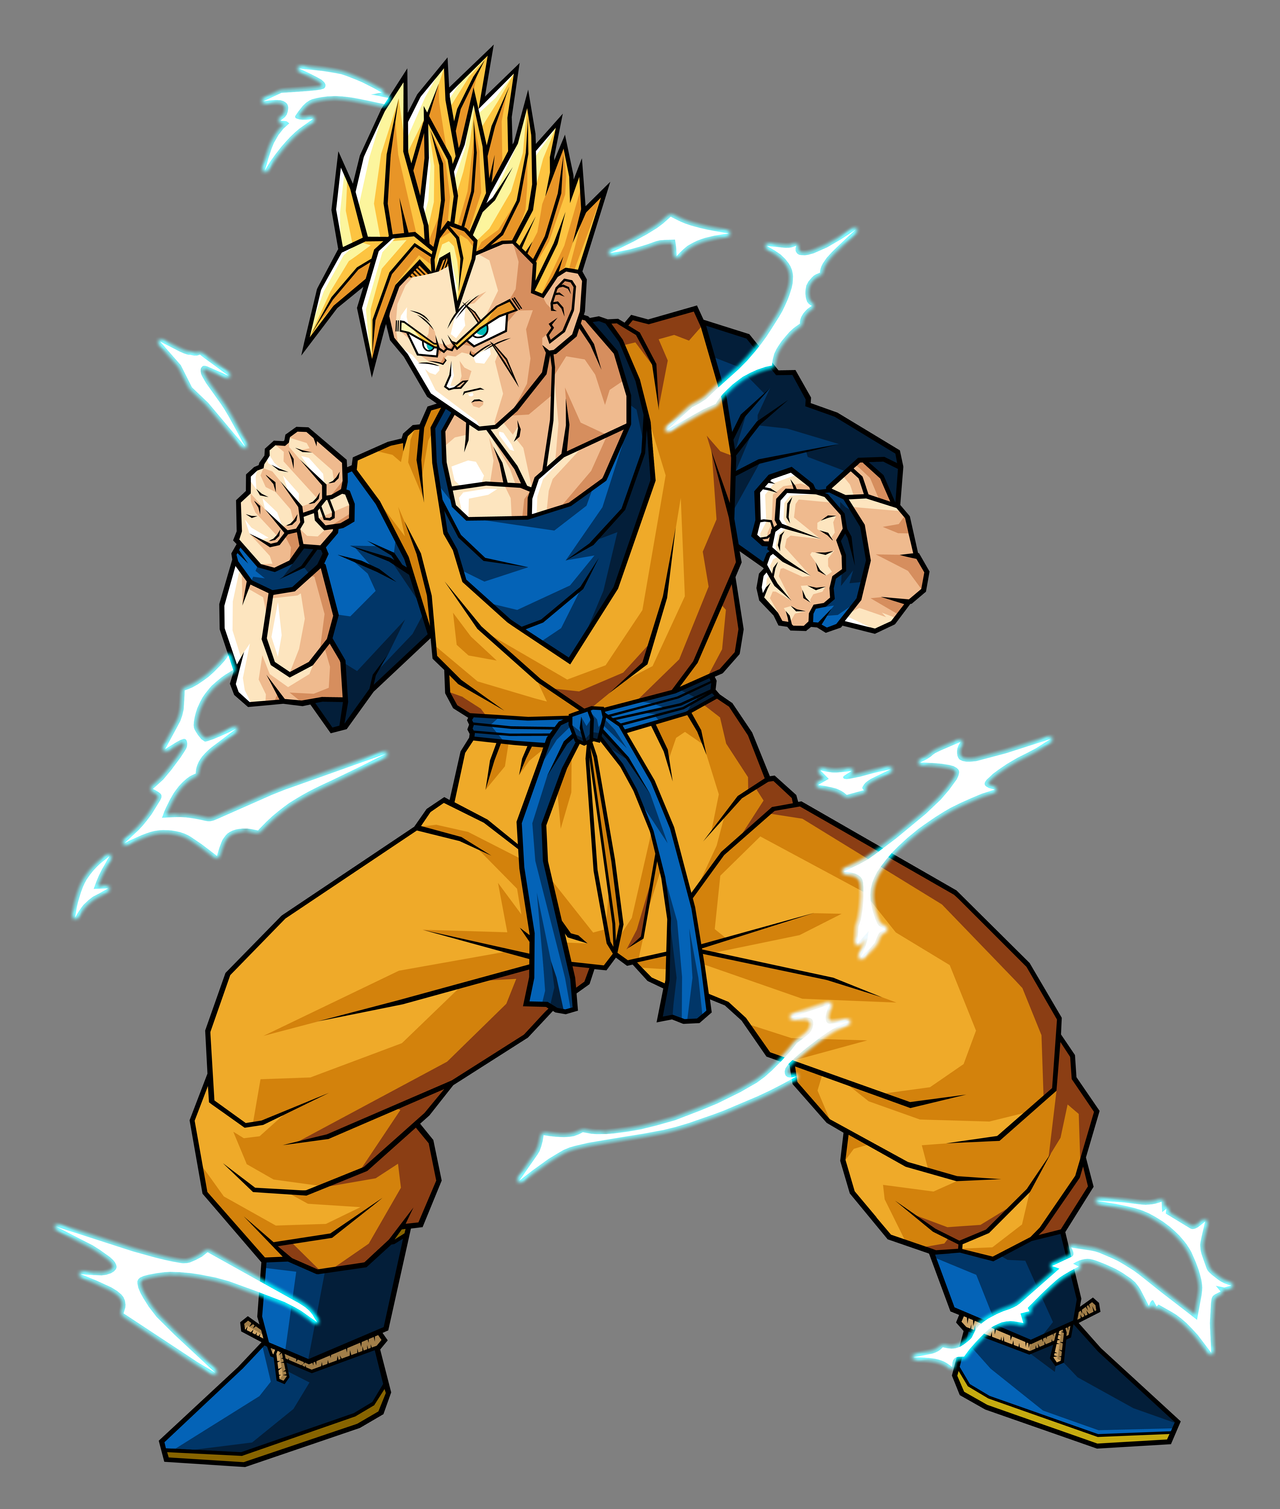 Future gohan ssj2 by hsvhrt on deviantart future gohan ssj2 by hsvhrt future gohan ssj2 by hsvhrt thecheapjerseys Image collections